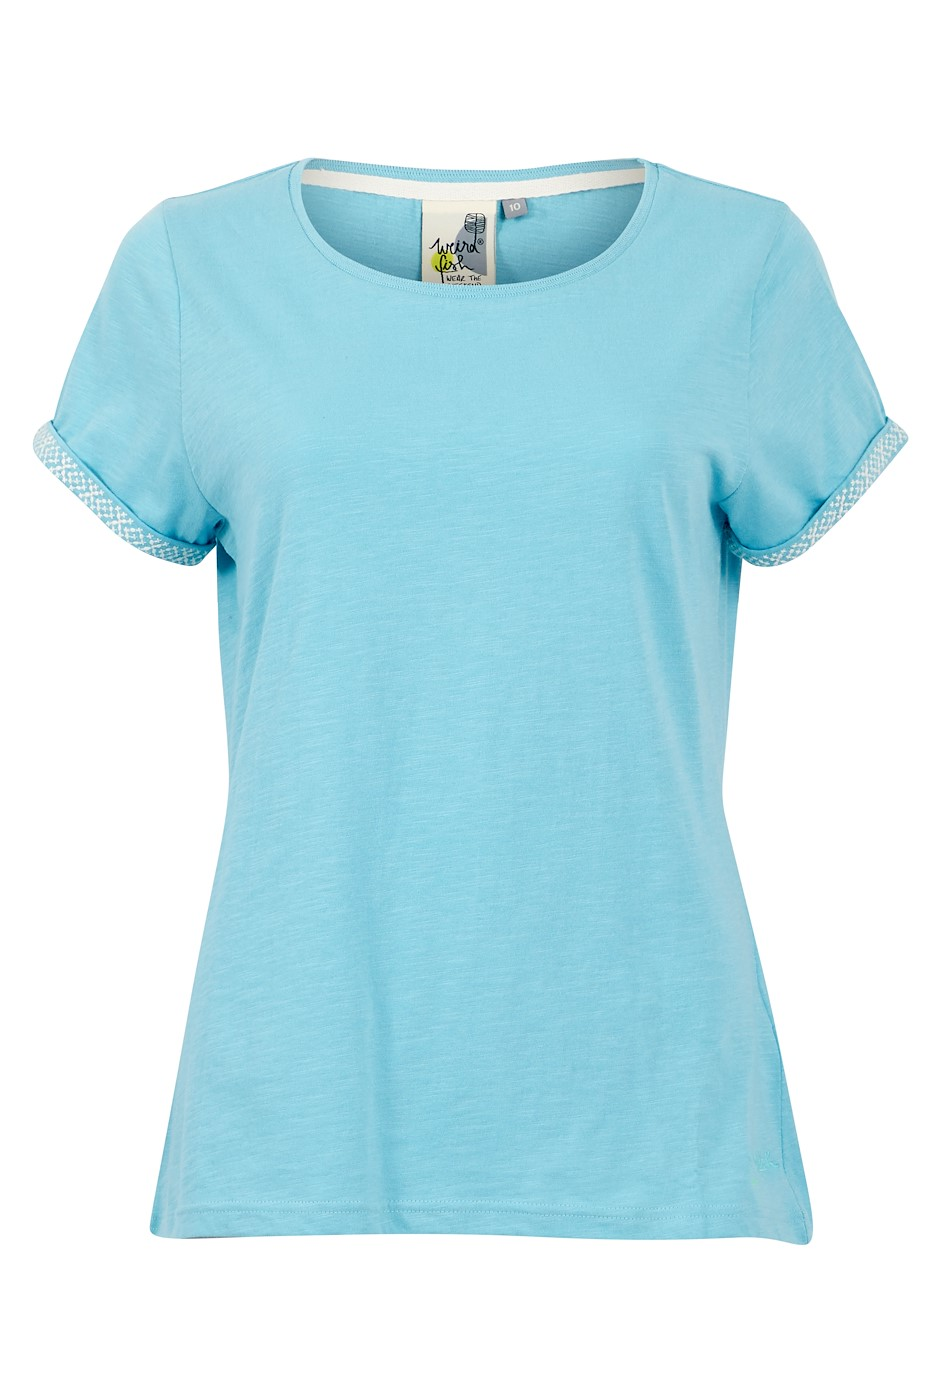 Trinity Organic Cotton Outfitter T-Shirt Sky Blue